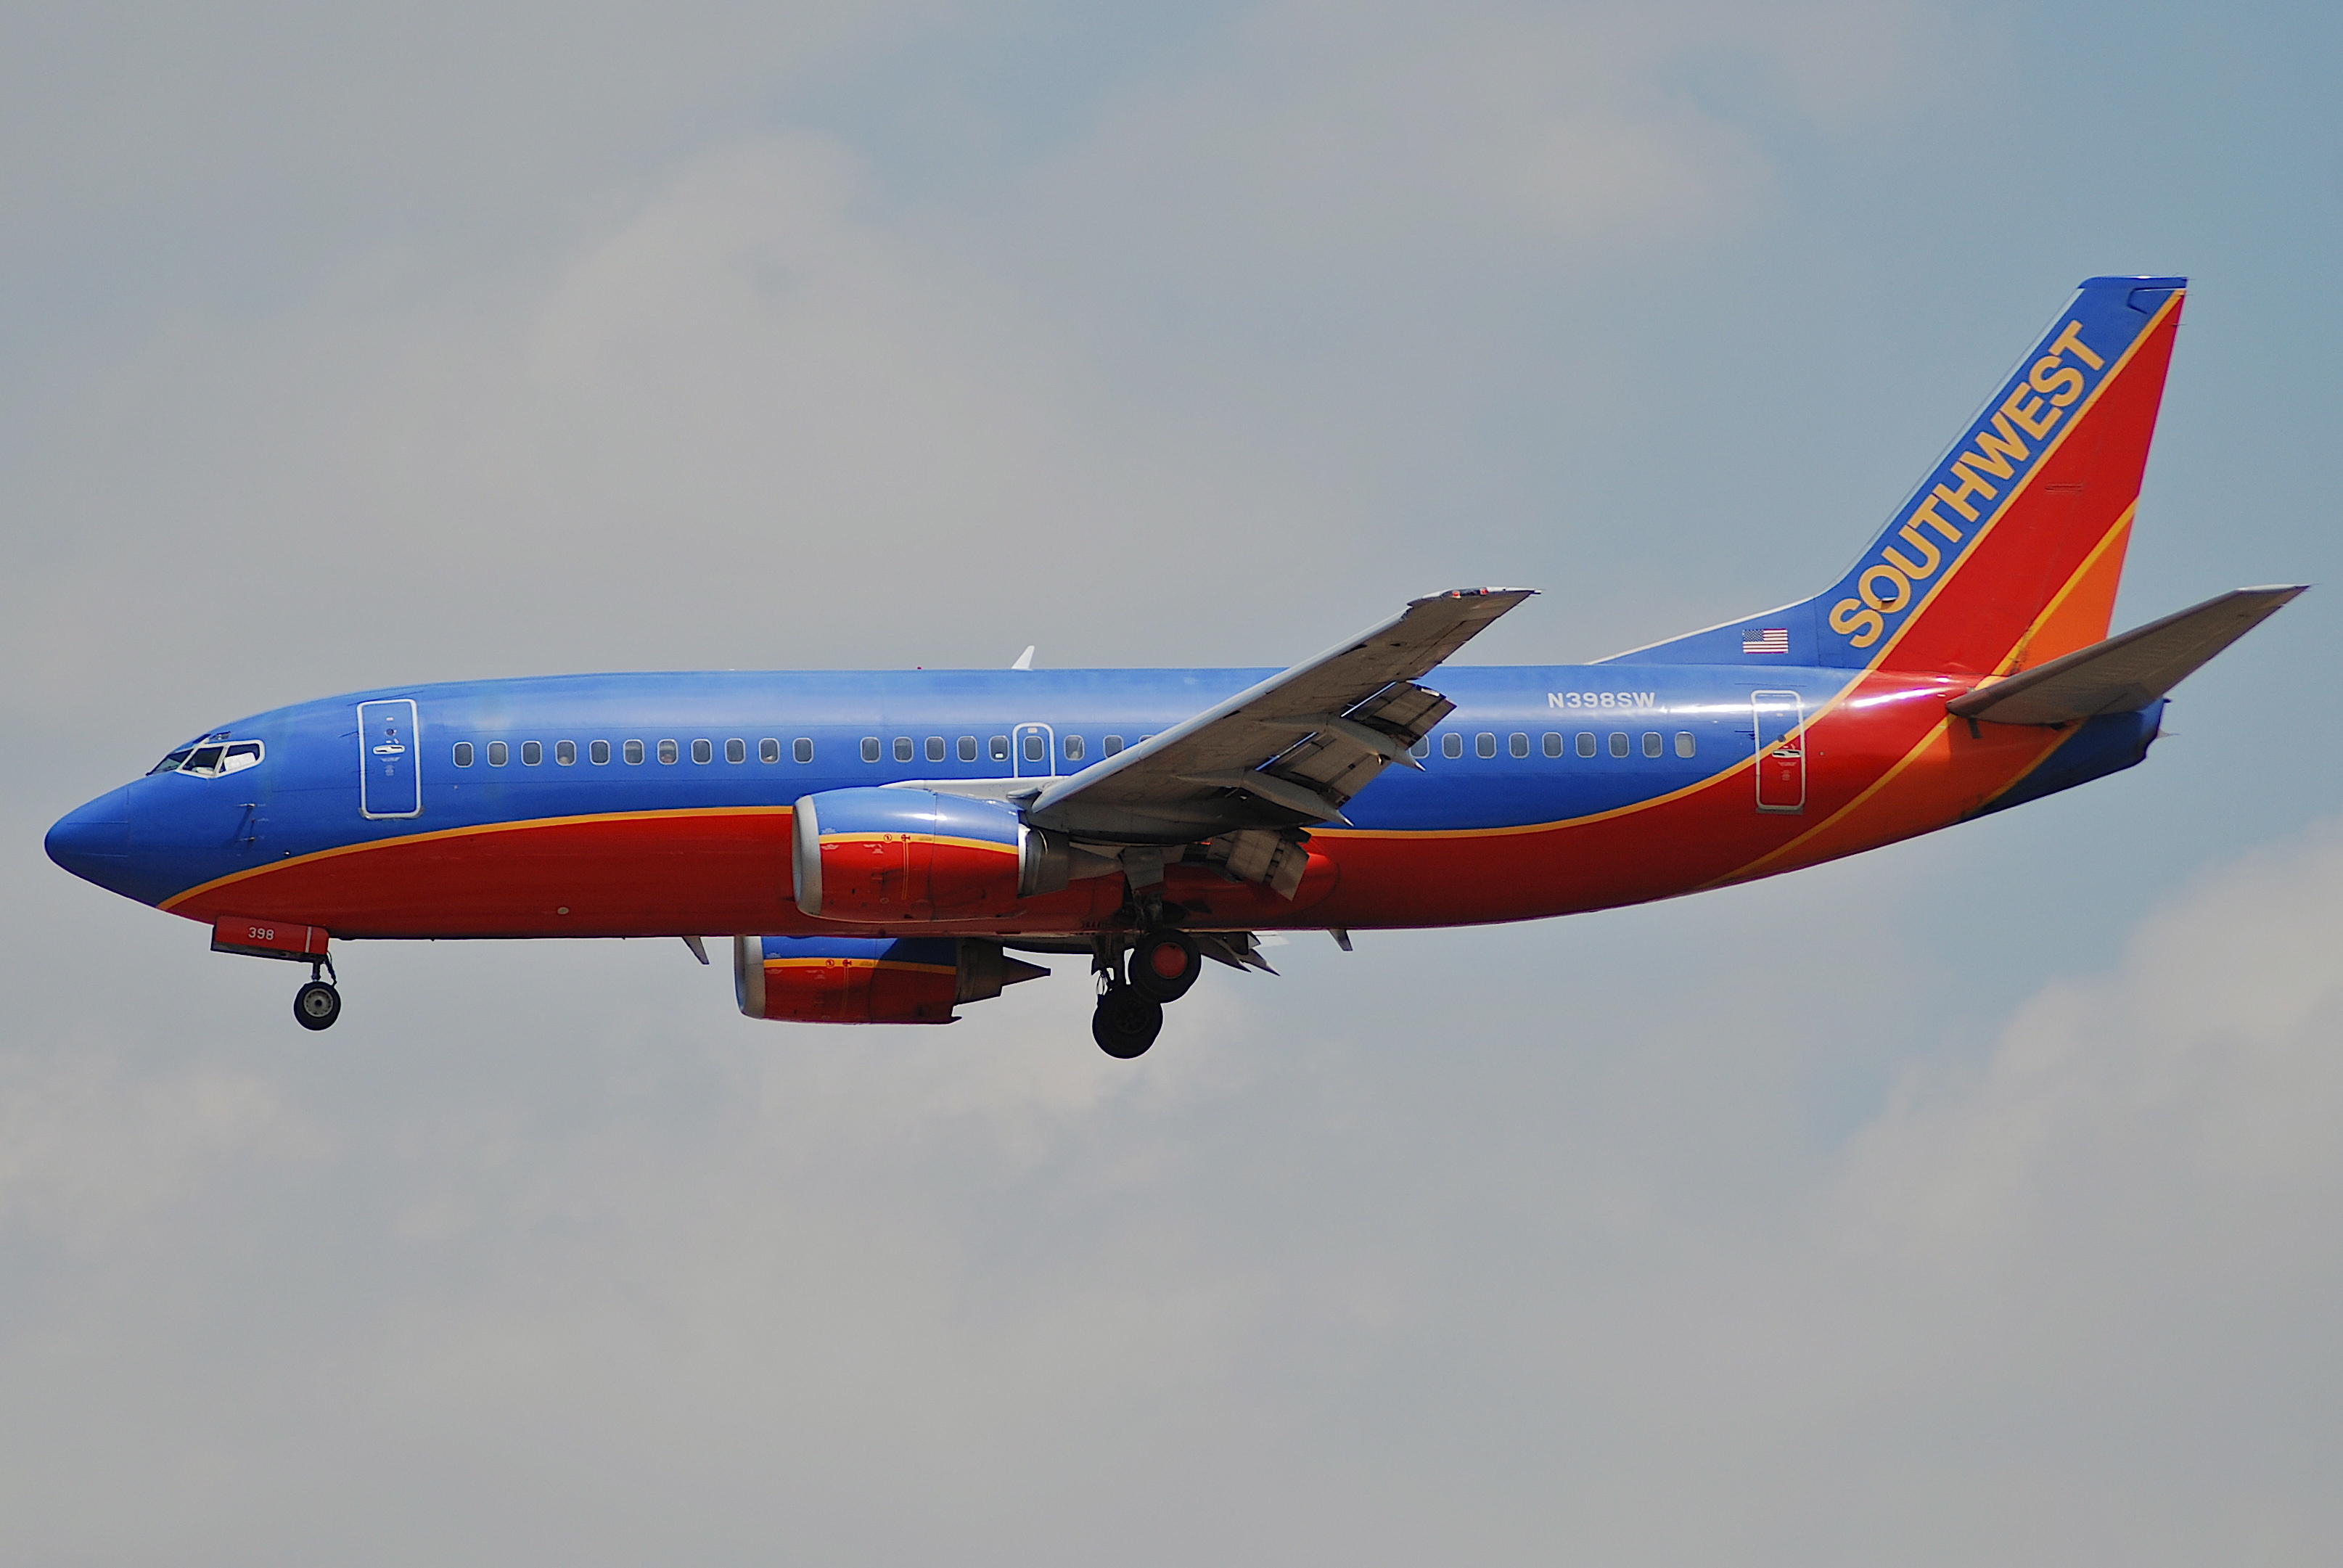 a summary of southwest airlines Airlines waive change fees as hurricane florence threatens to snarl travel american airlines and southwest airlines are waiving fees to change travel plans hurricane florence is a category 4 storm with maximum sustained winds of 130 miles per hour.